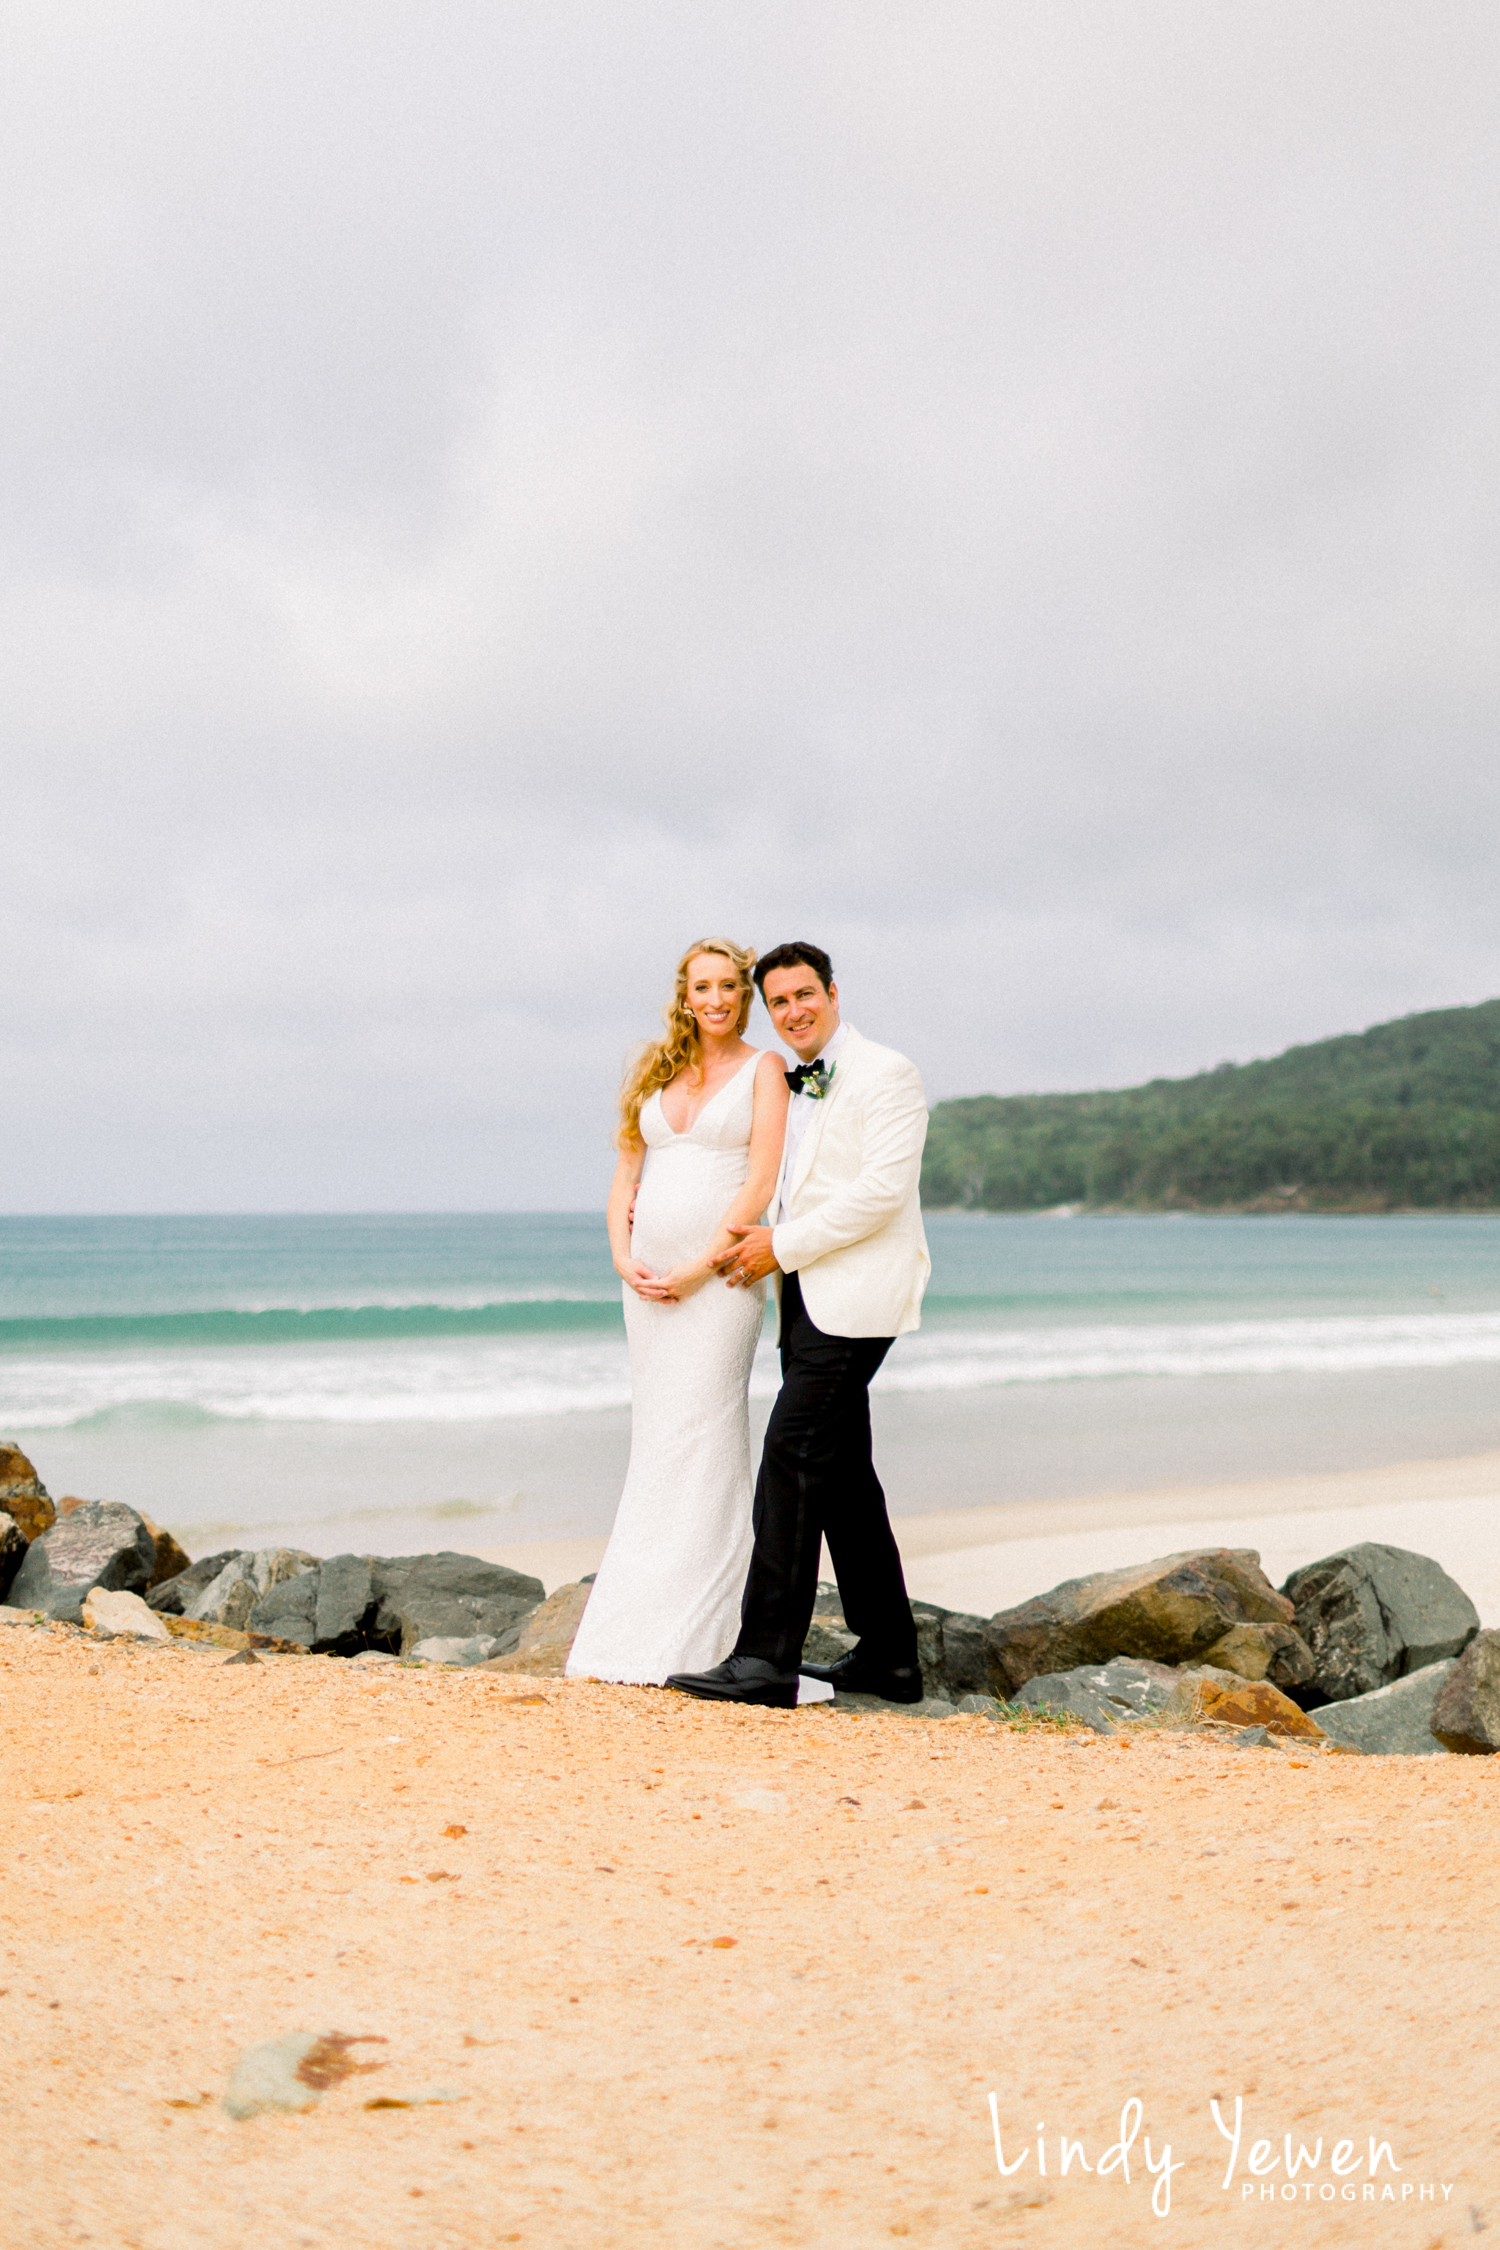 Noosa-Weddings-Amelia-Michael 246.jpg